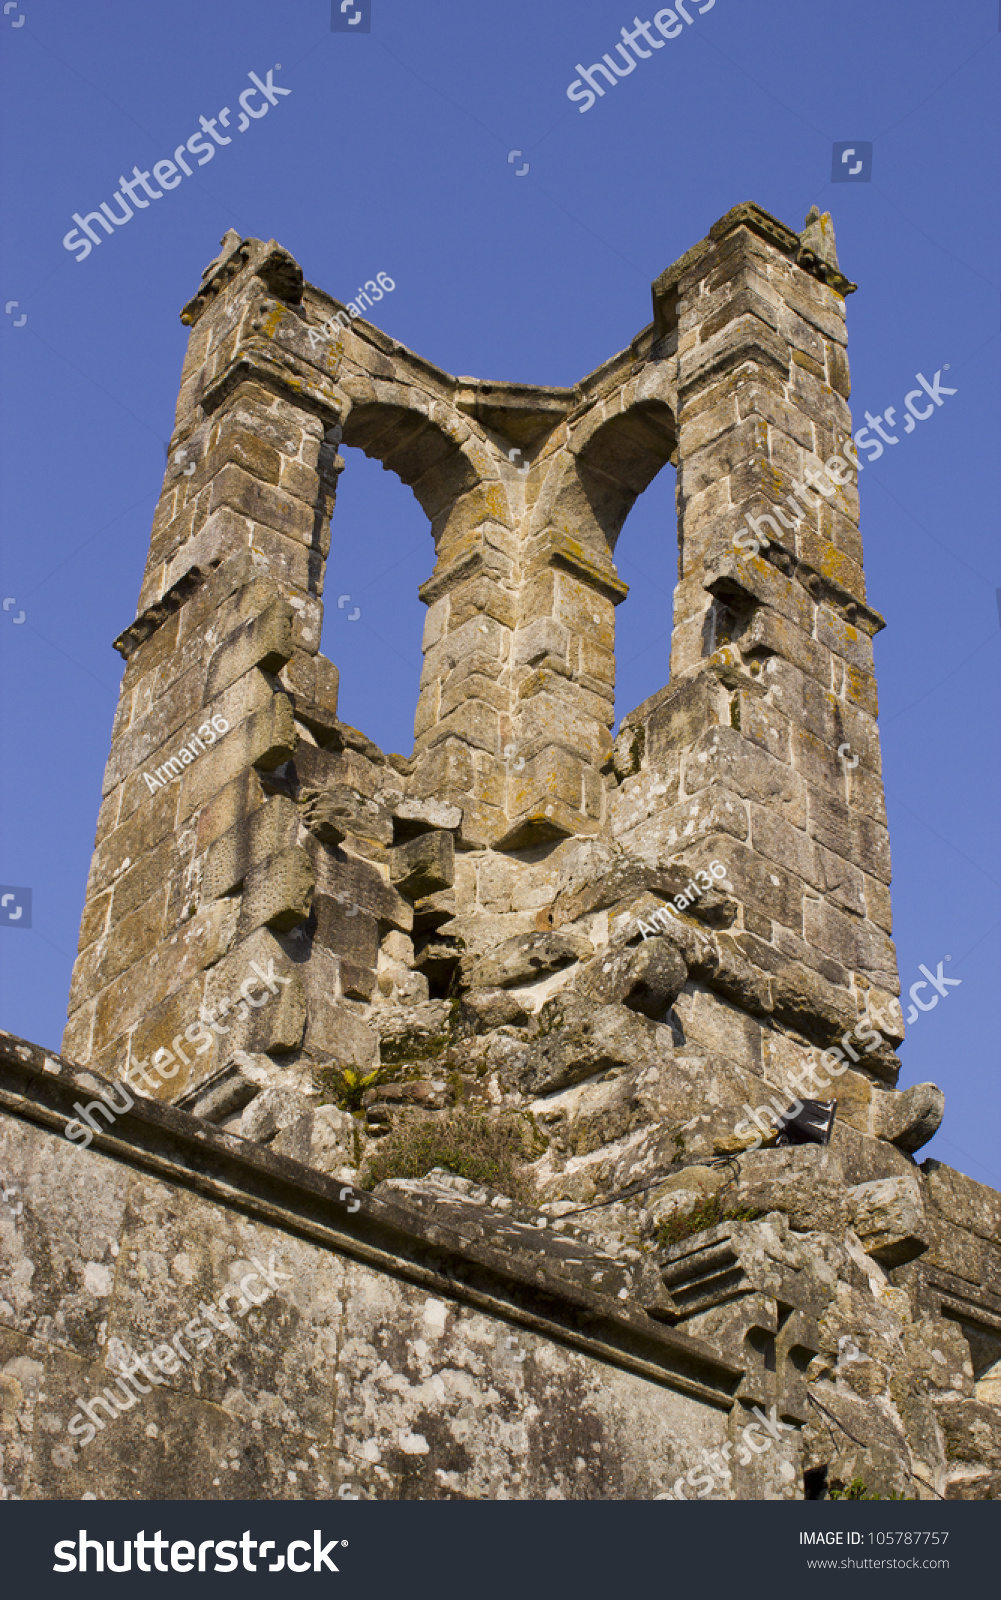 old ruined tower belonging to a fifteenth century church #105787757